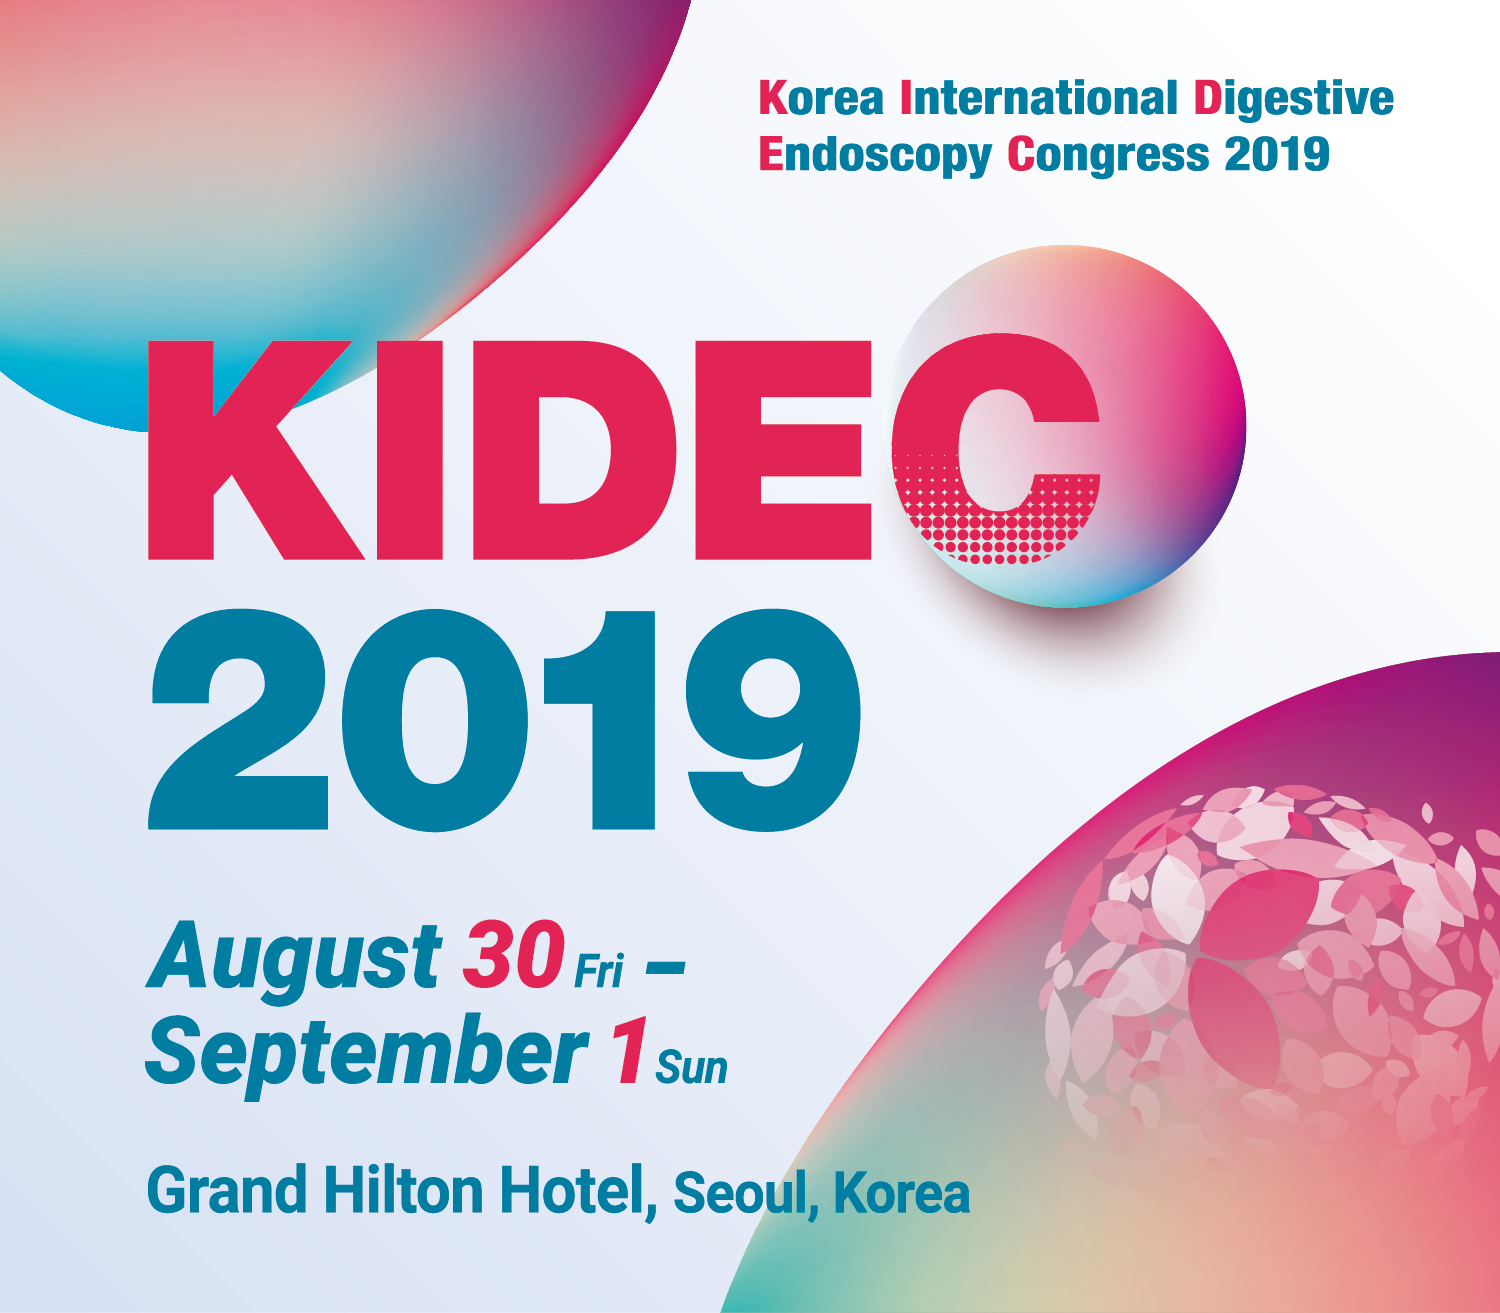 International Digestive Endoscopy Congress (KIDEC) 2019